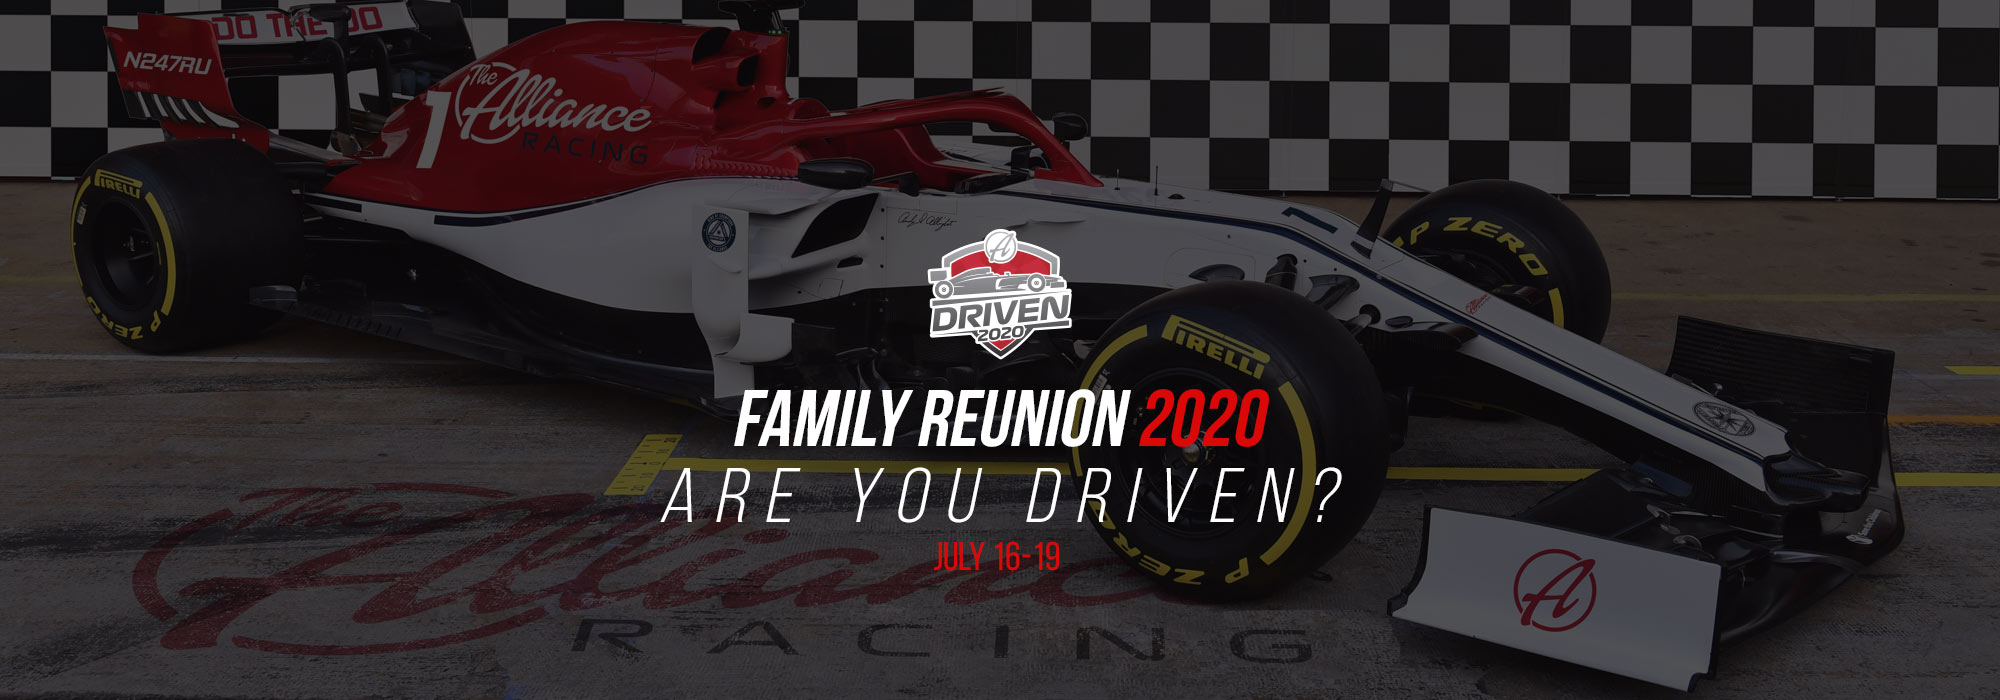 Family Reunion - July 2020